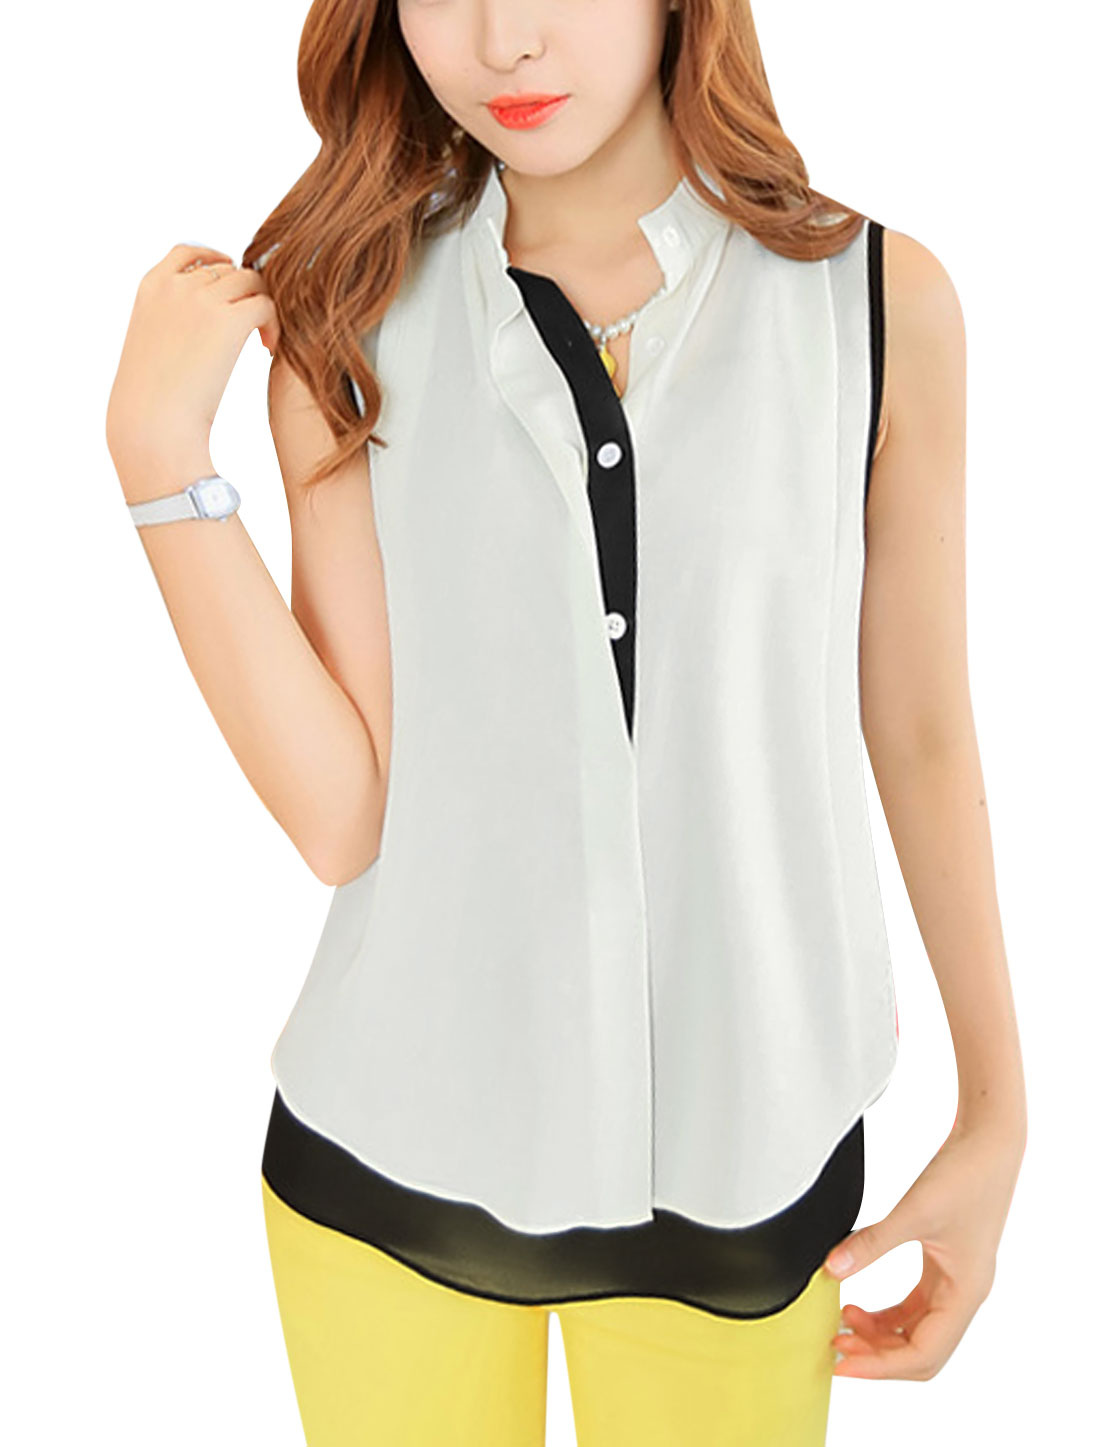 Lady See Through Tank Top w Gathered Detail Chiffon Shirt Black White S